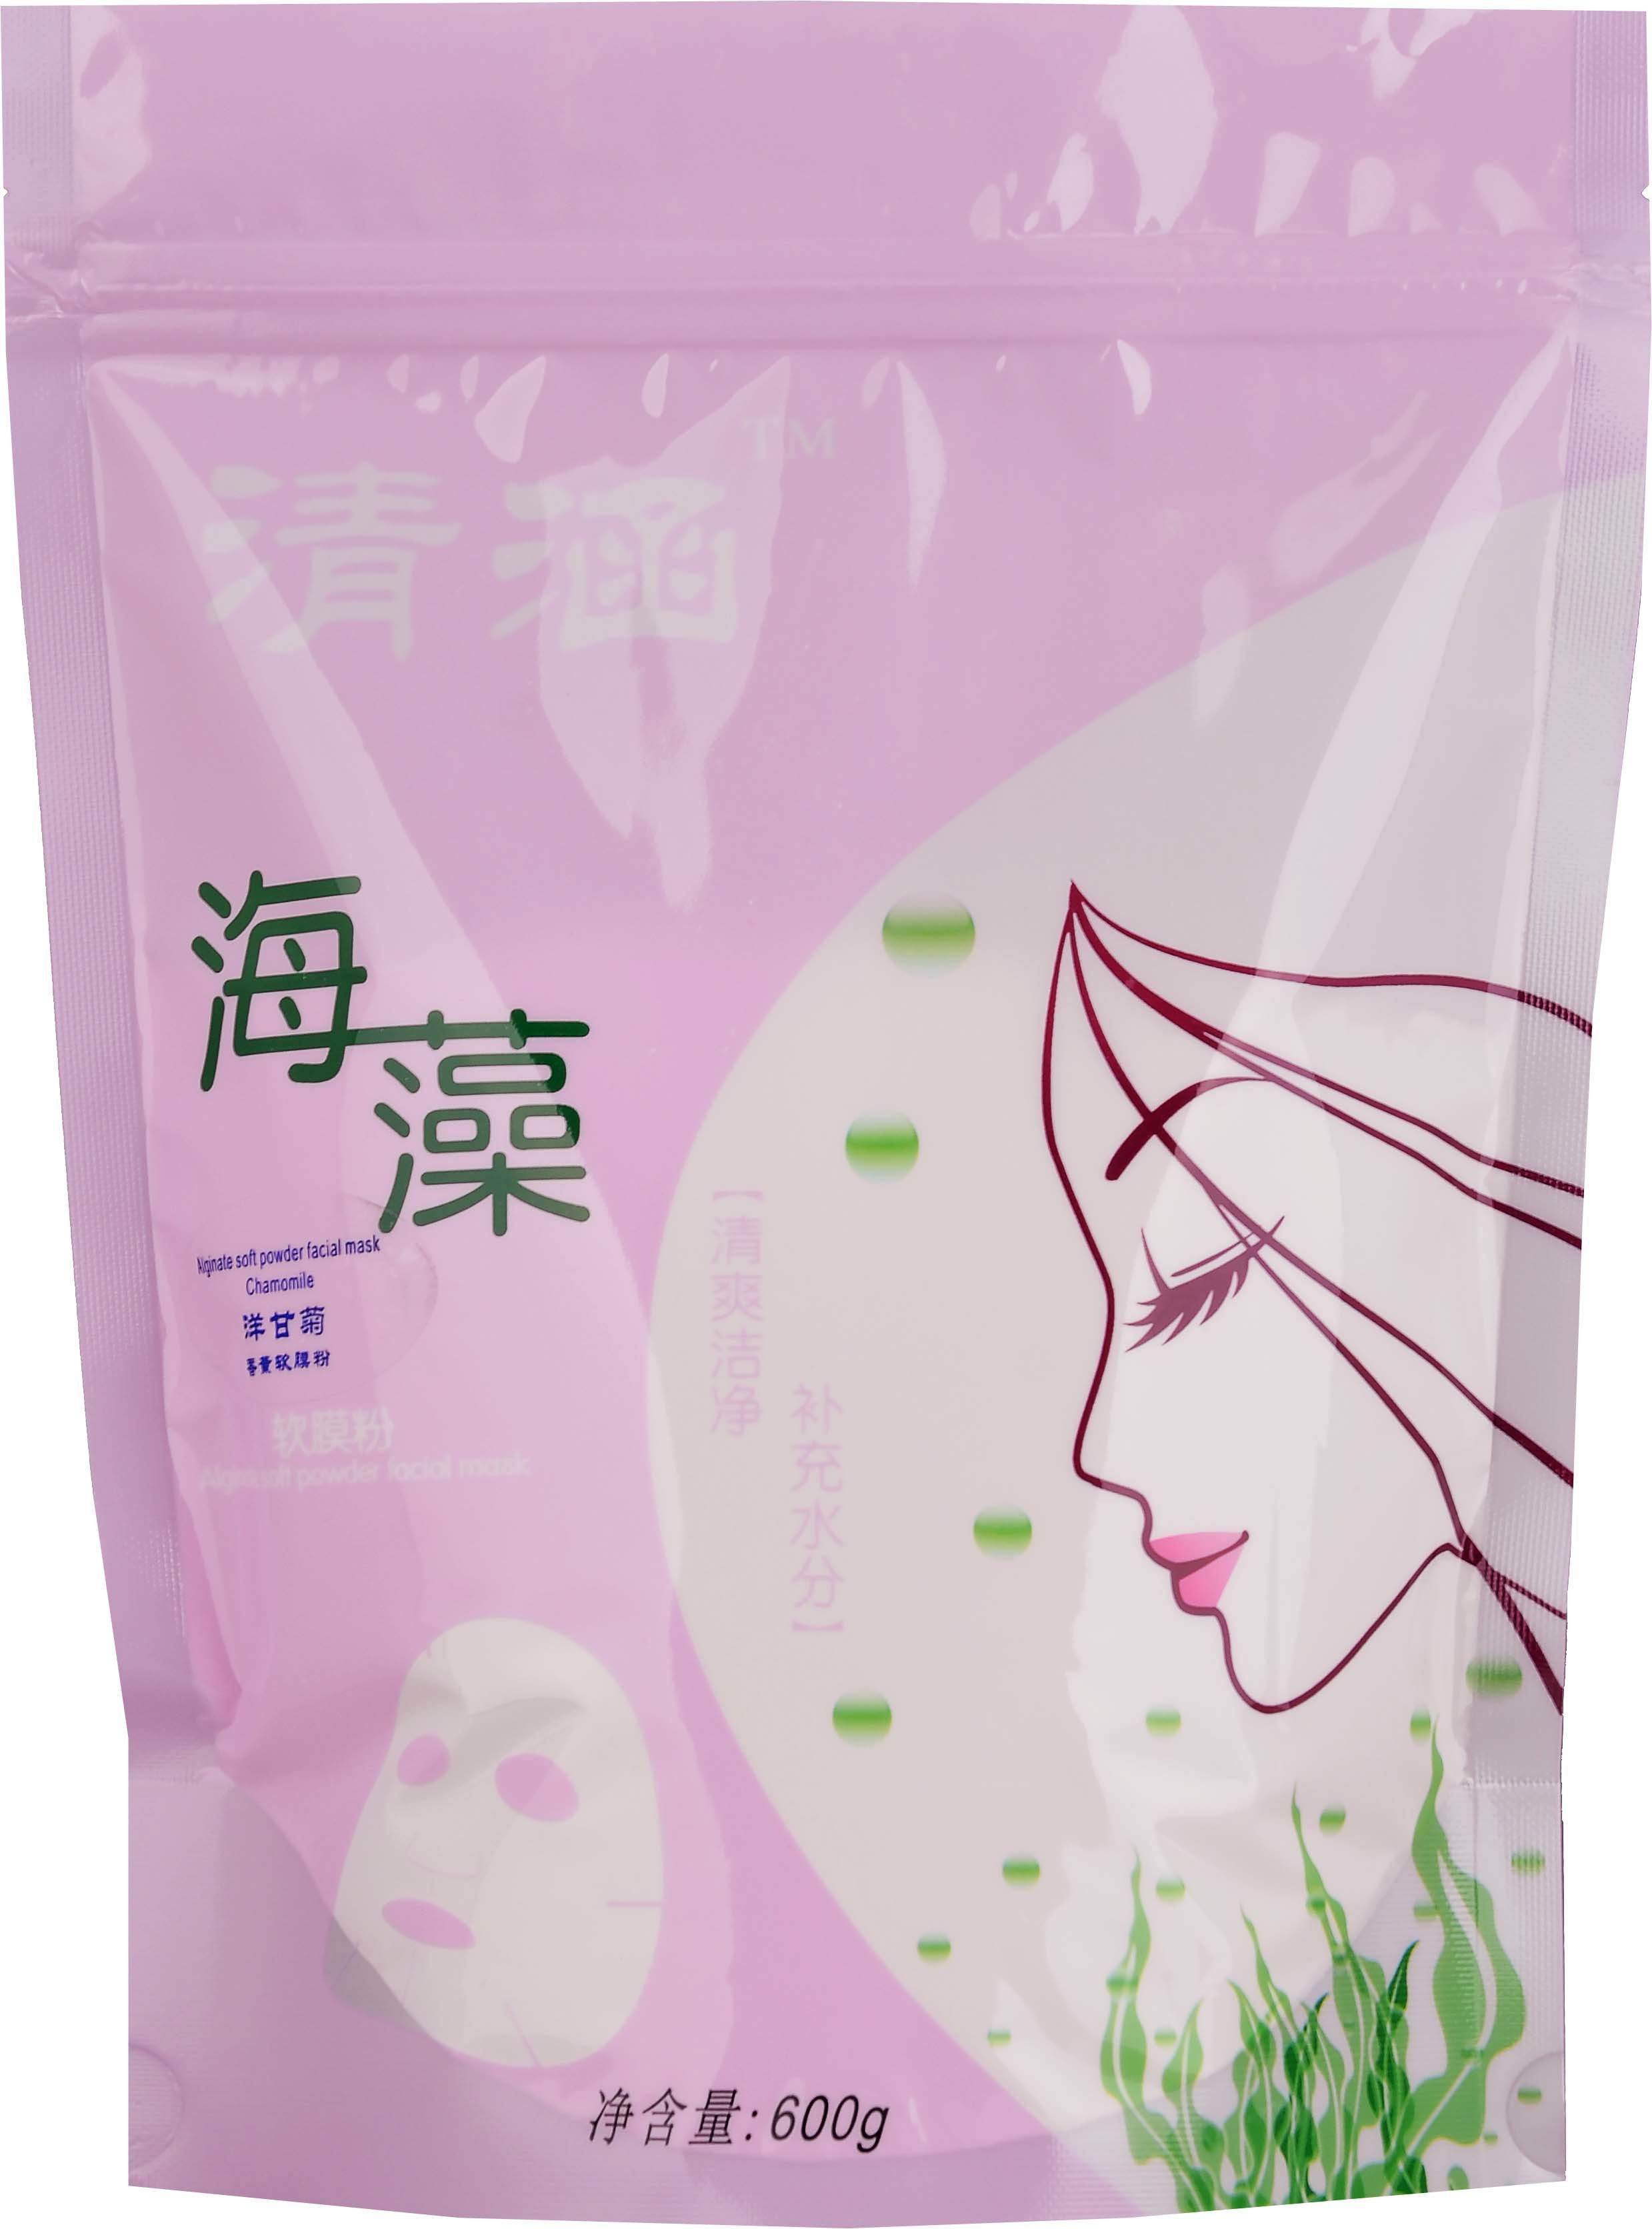 Moisturizing Calm Chamomile Facial Mask Maintain Skin Elasticity